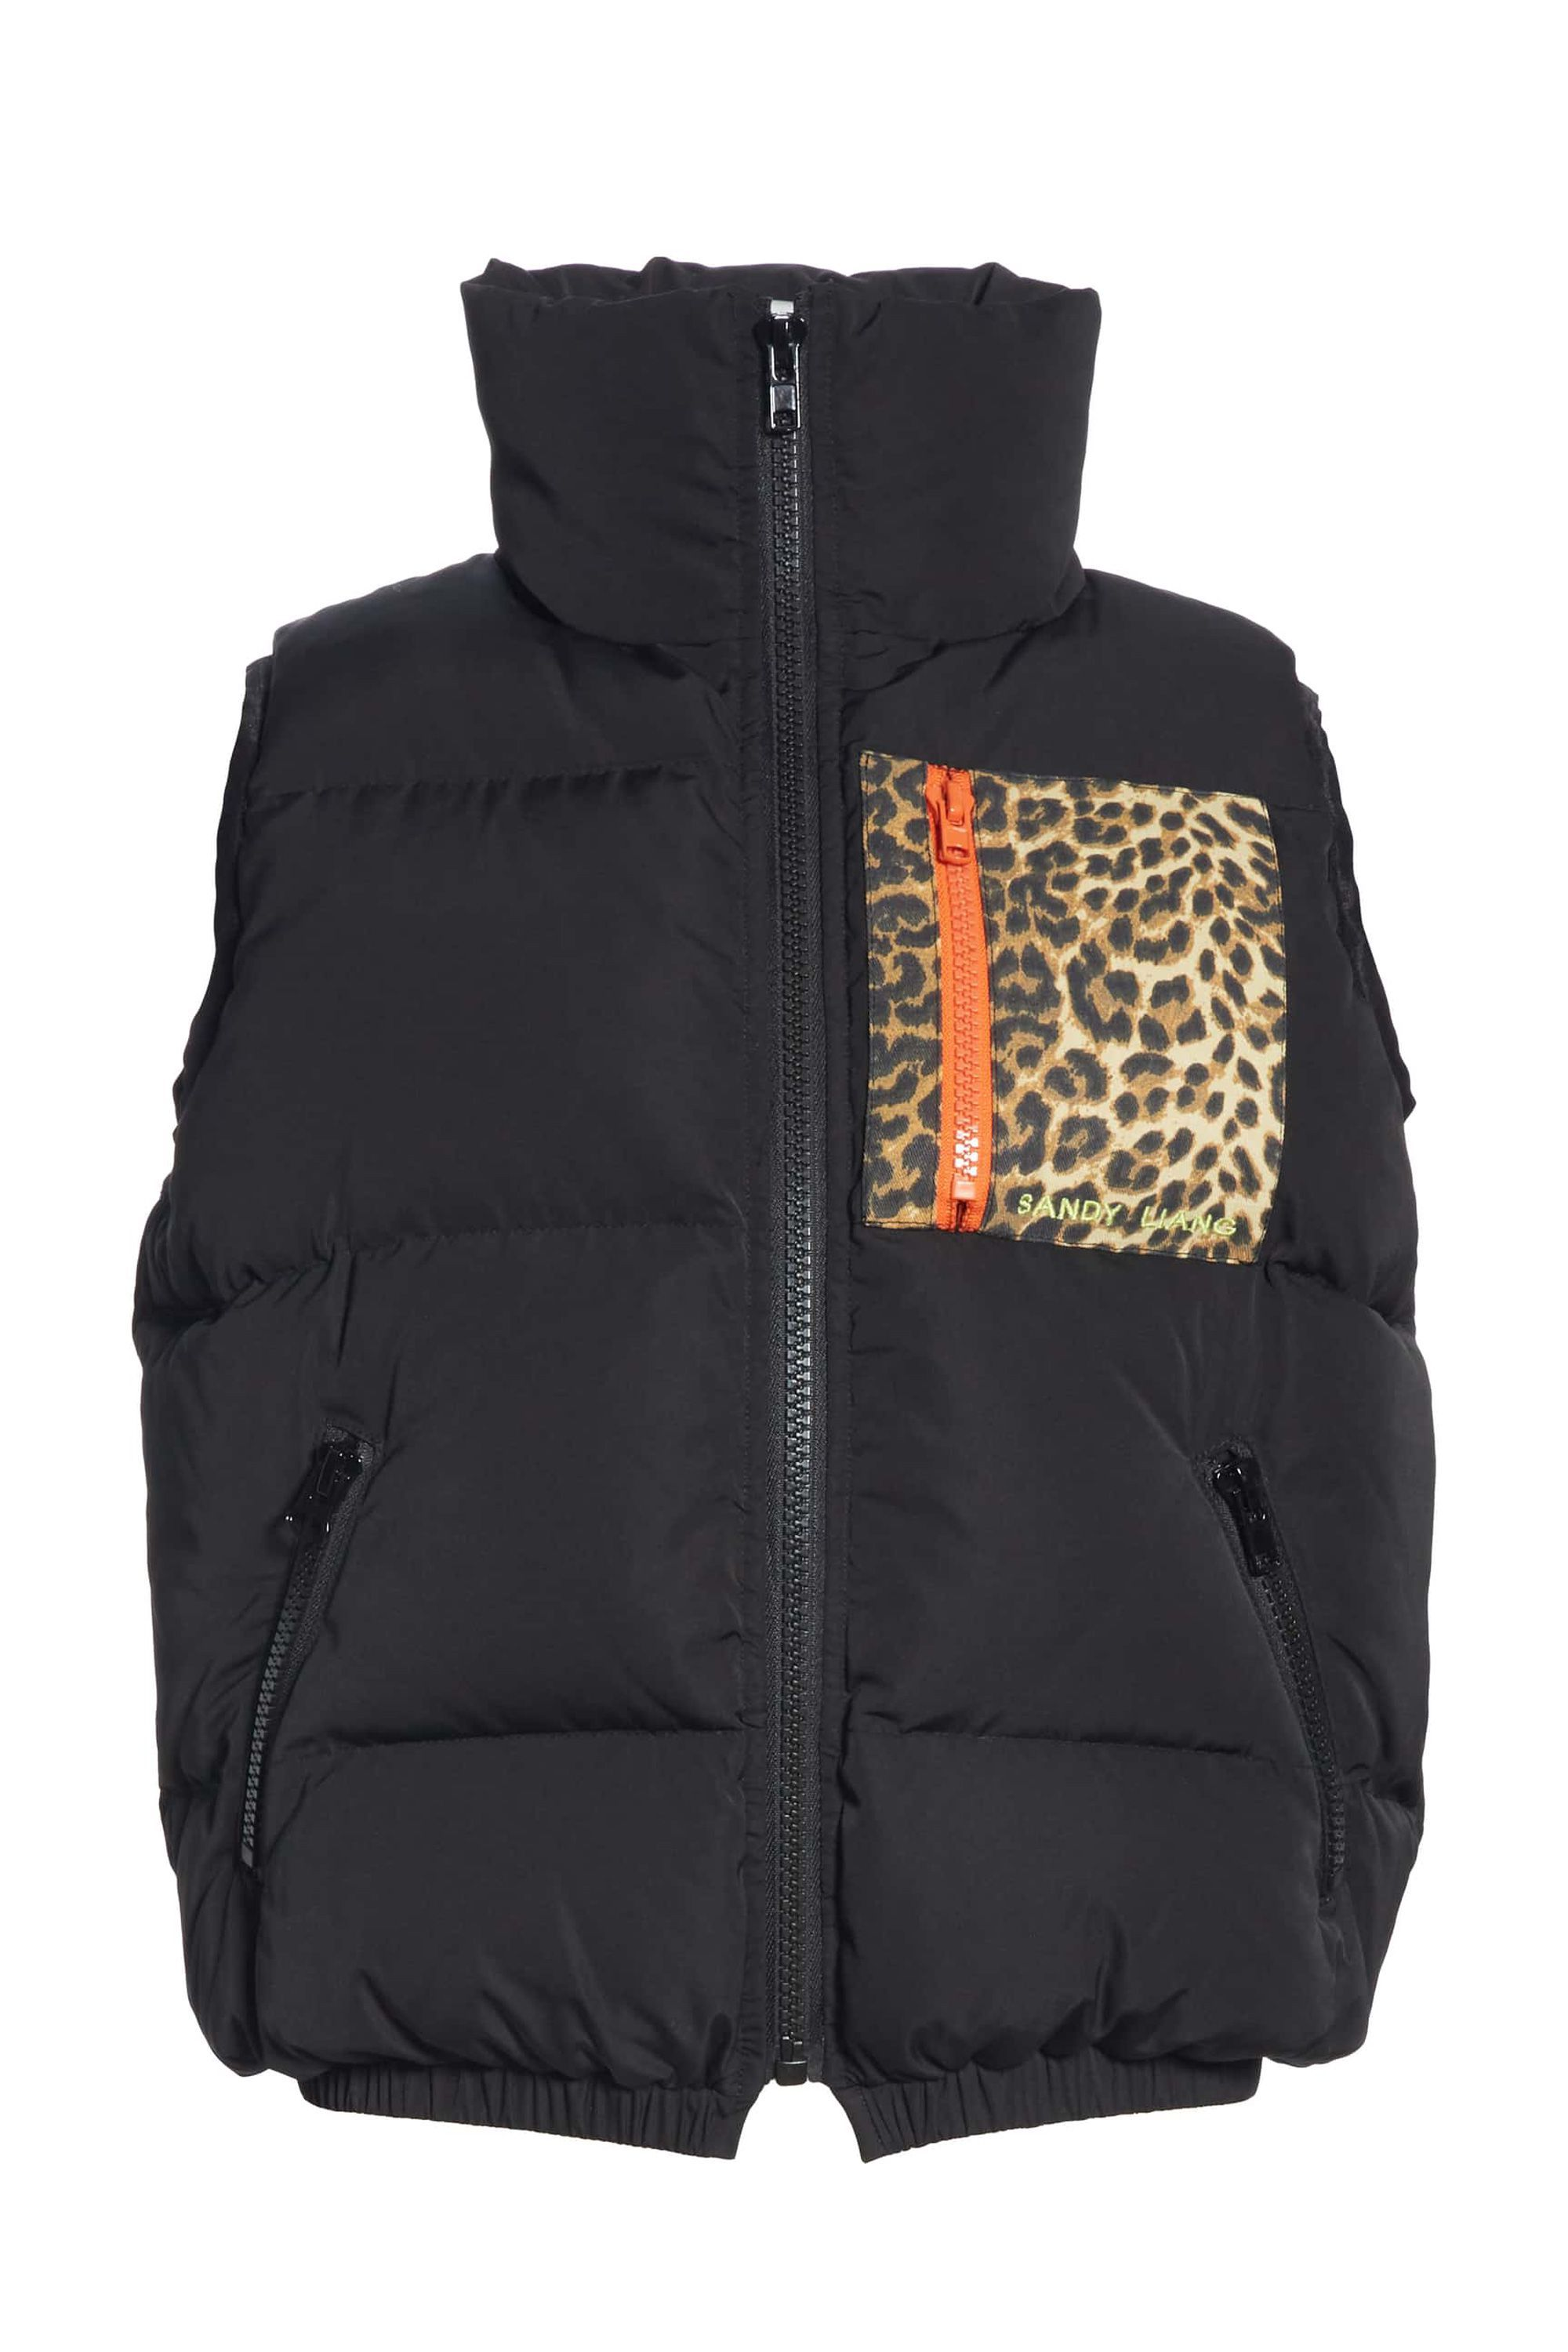 Primrose Down Puffer Vest Sandy Liang nordstrom.com $475.00 SHOP NOW Puffer vests are worn by gardening moms worldwide. This flashy style by industry favorite designer is unlike anything your mom owns.